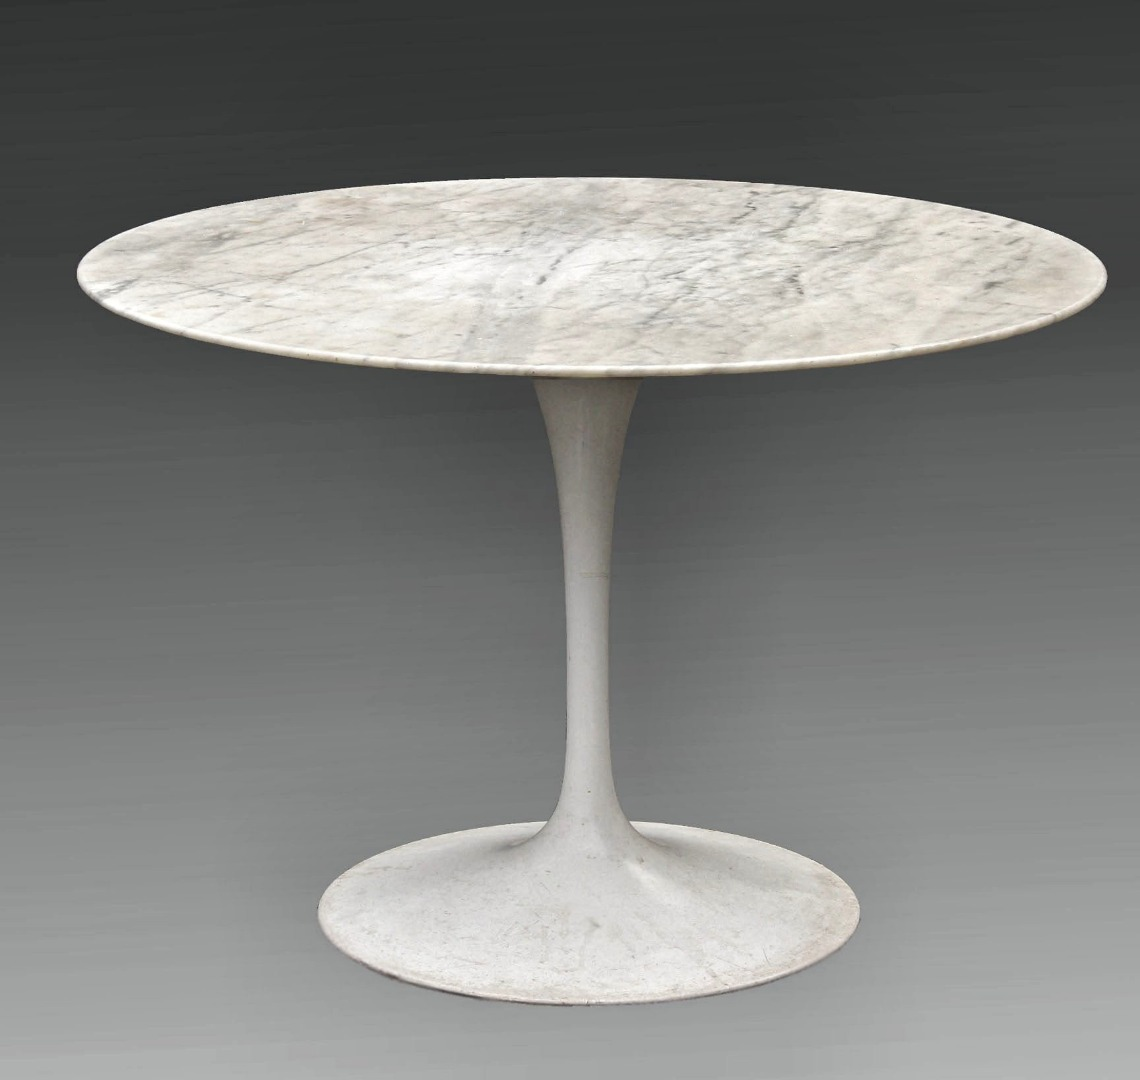 Knoll International Table 172-173